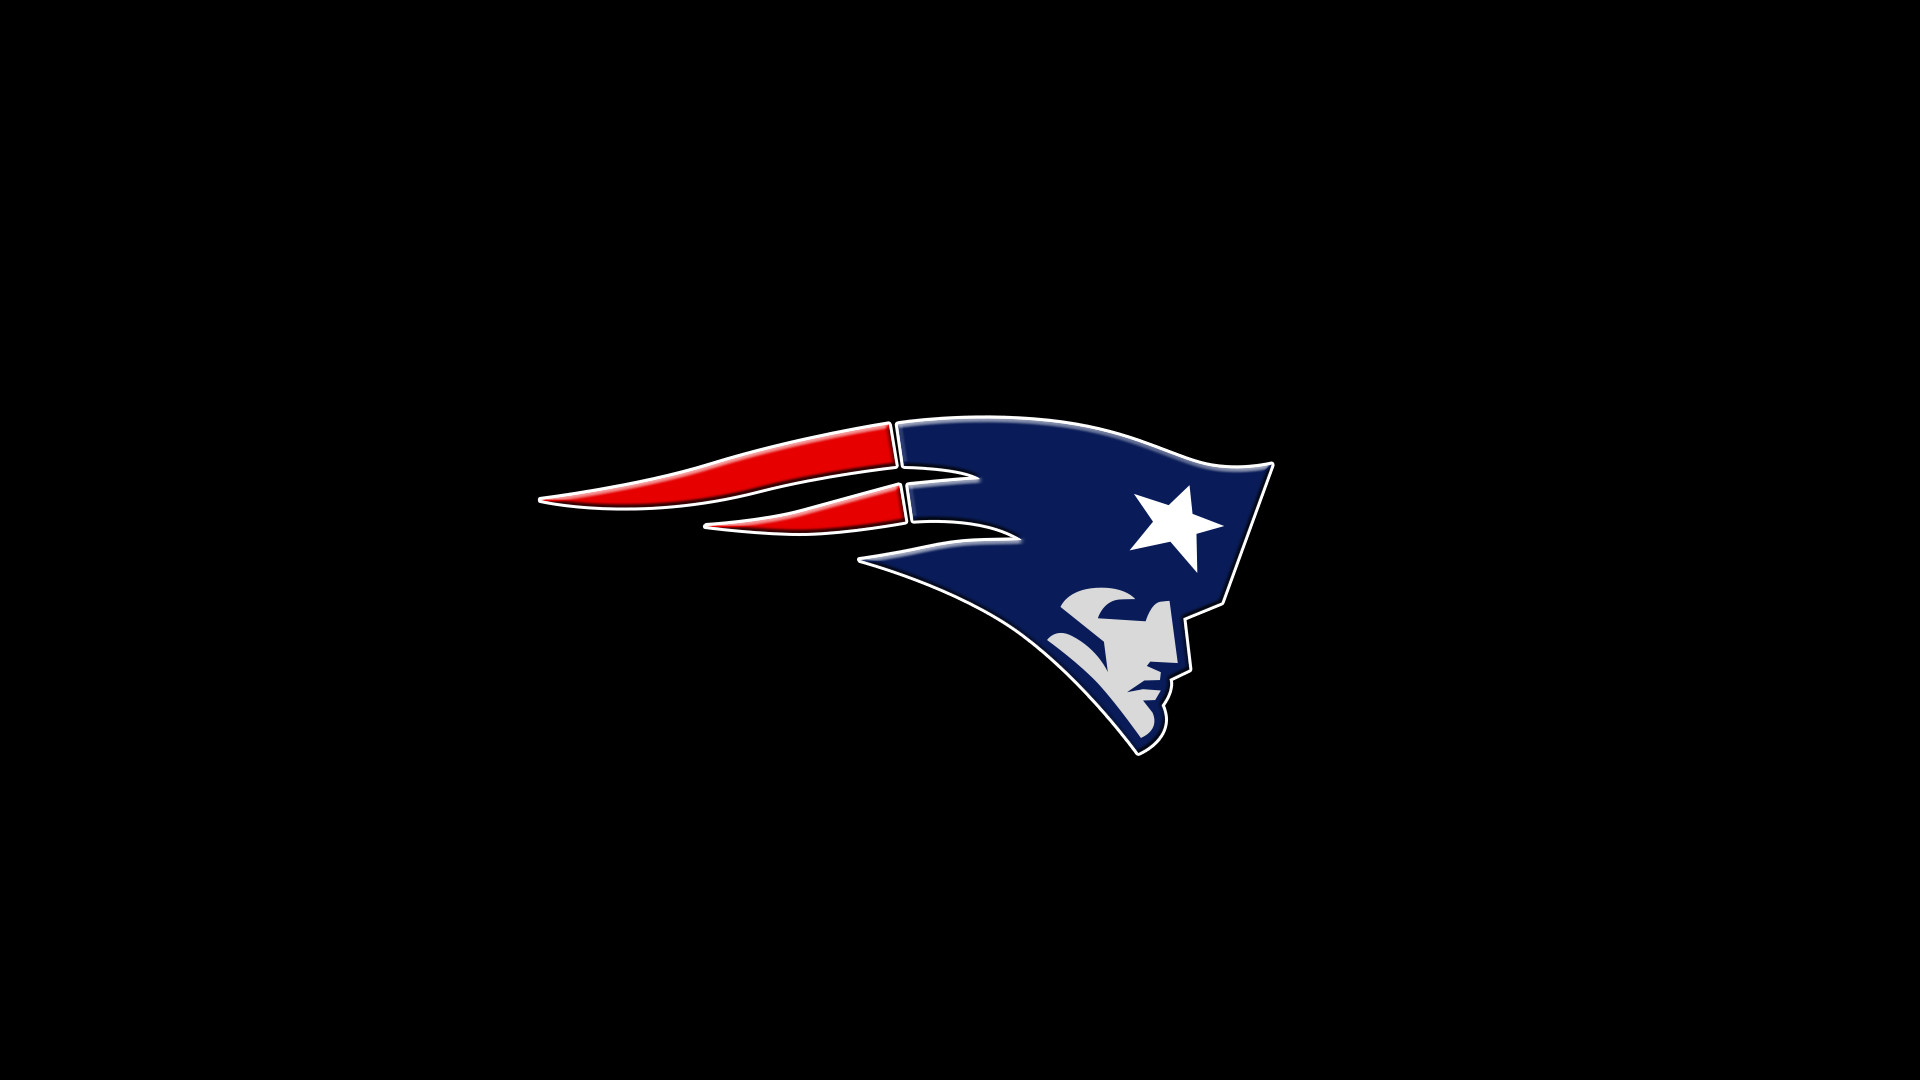 NFL Team Logos Wallpaper, 44 NFL Team Logos Wallpapers and .